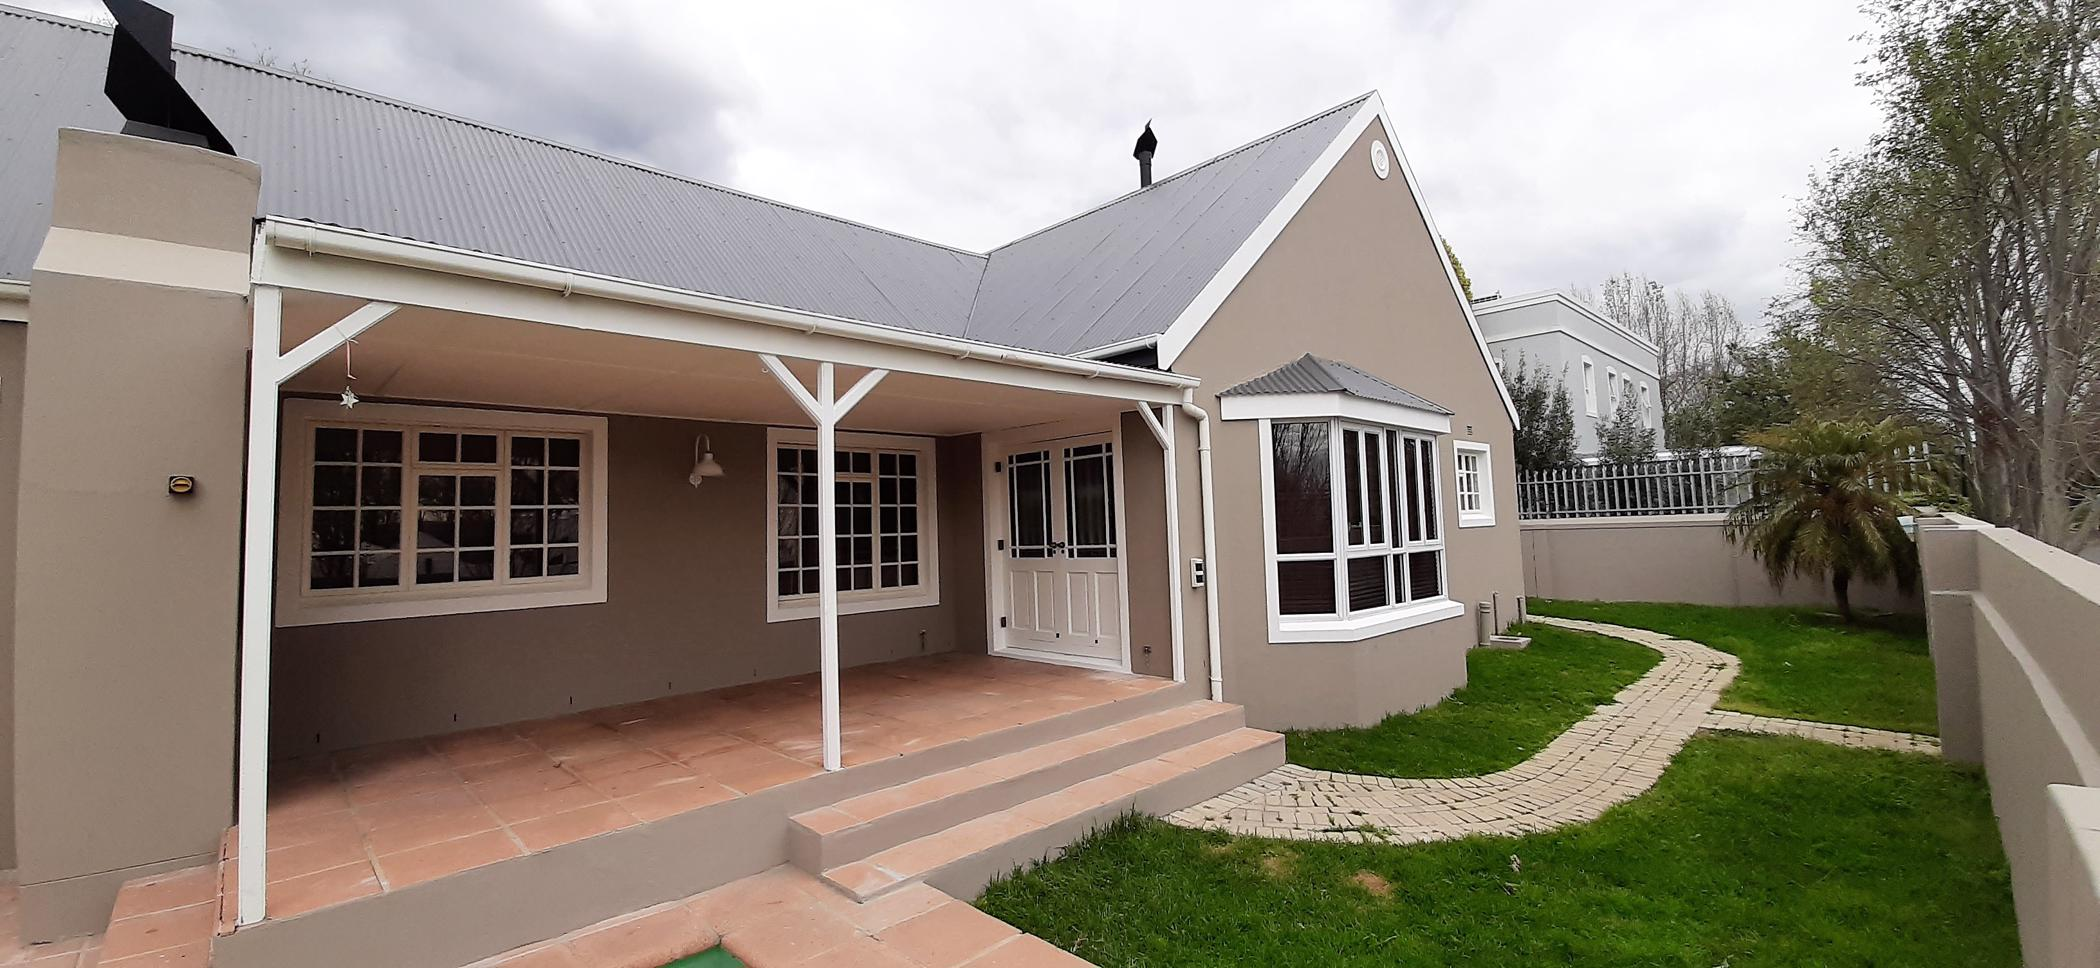 https://listing.pamgolding.co.za/images/properties/201908/488763/H/488763_H_22.jpg